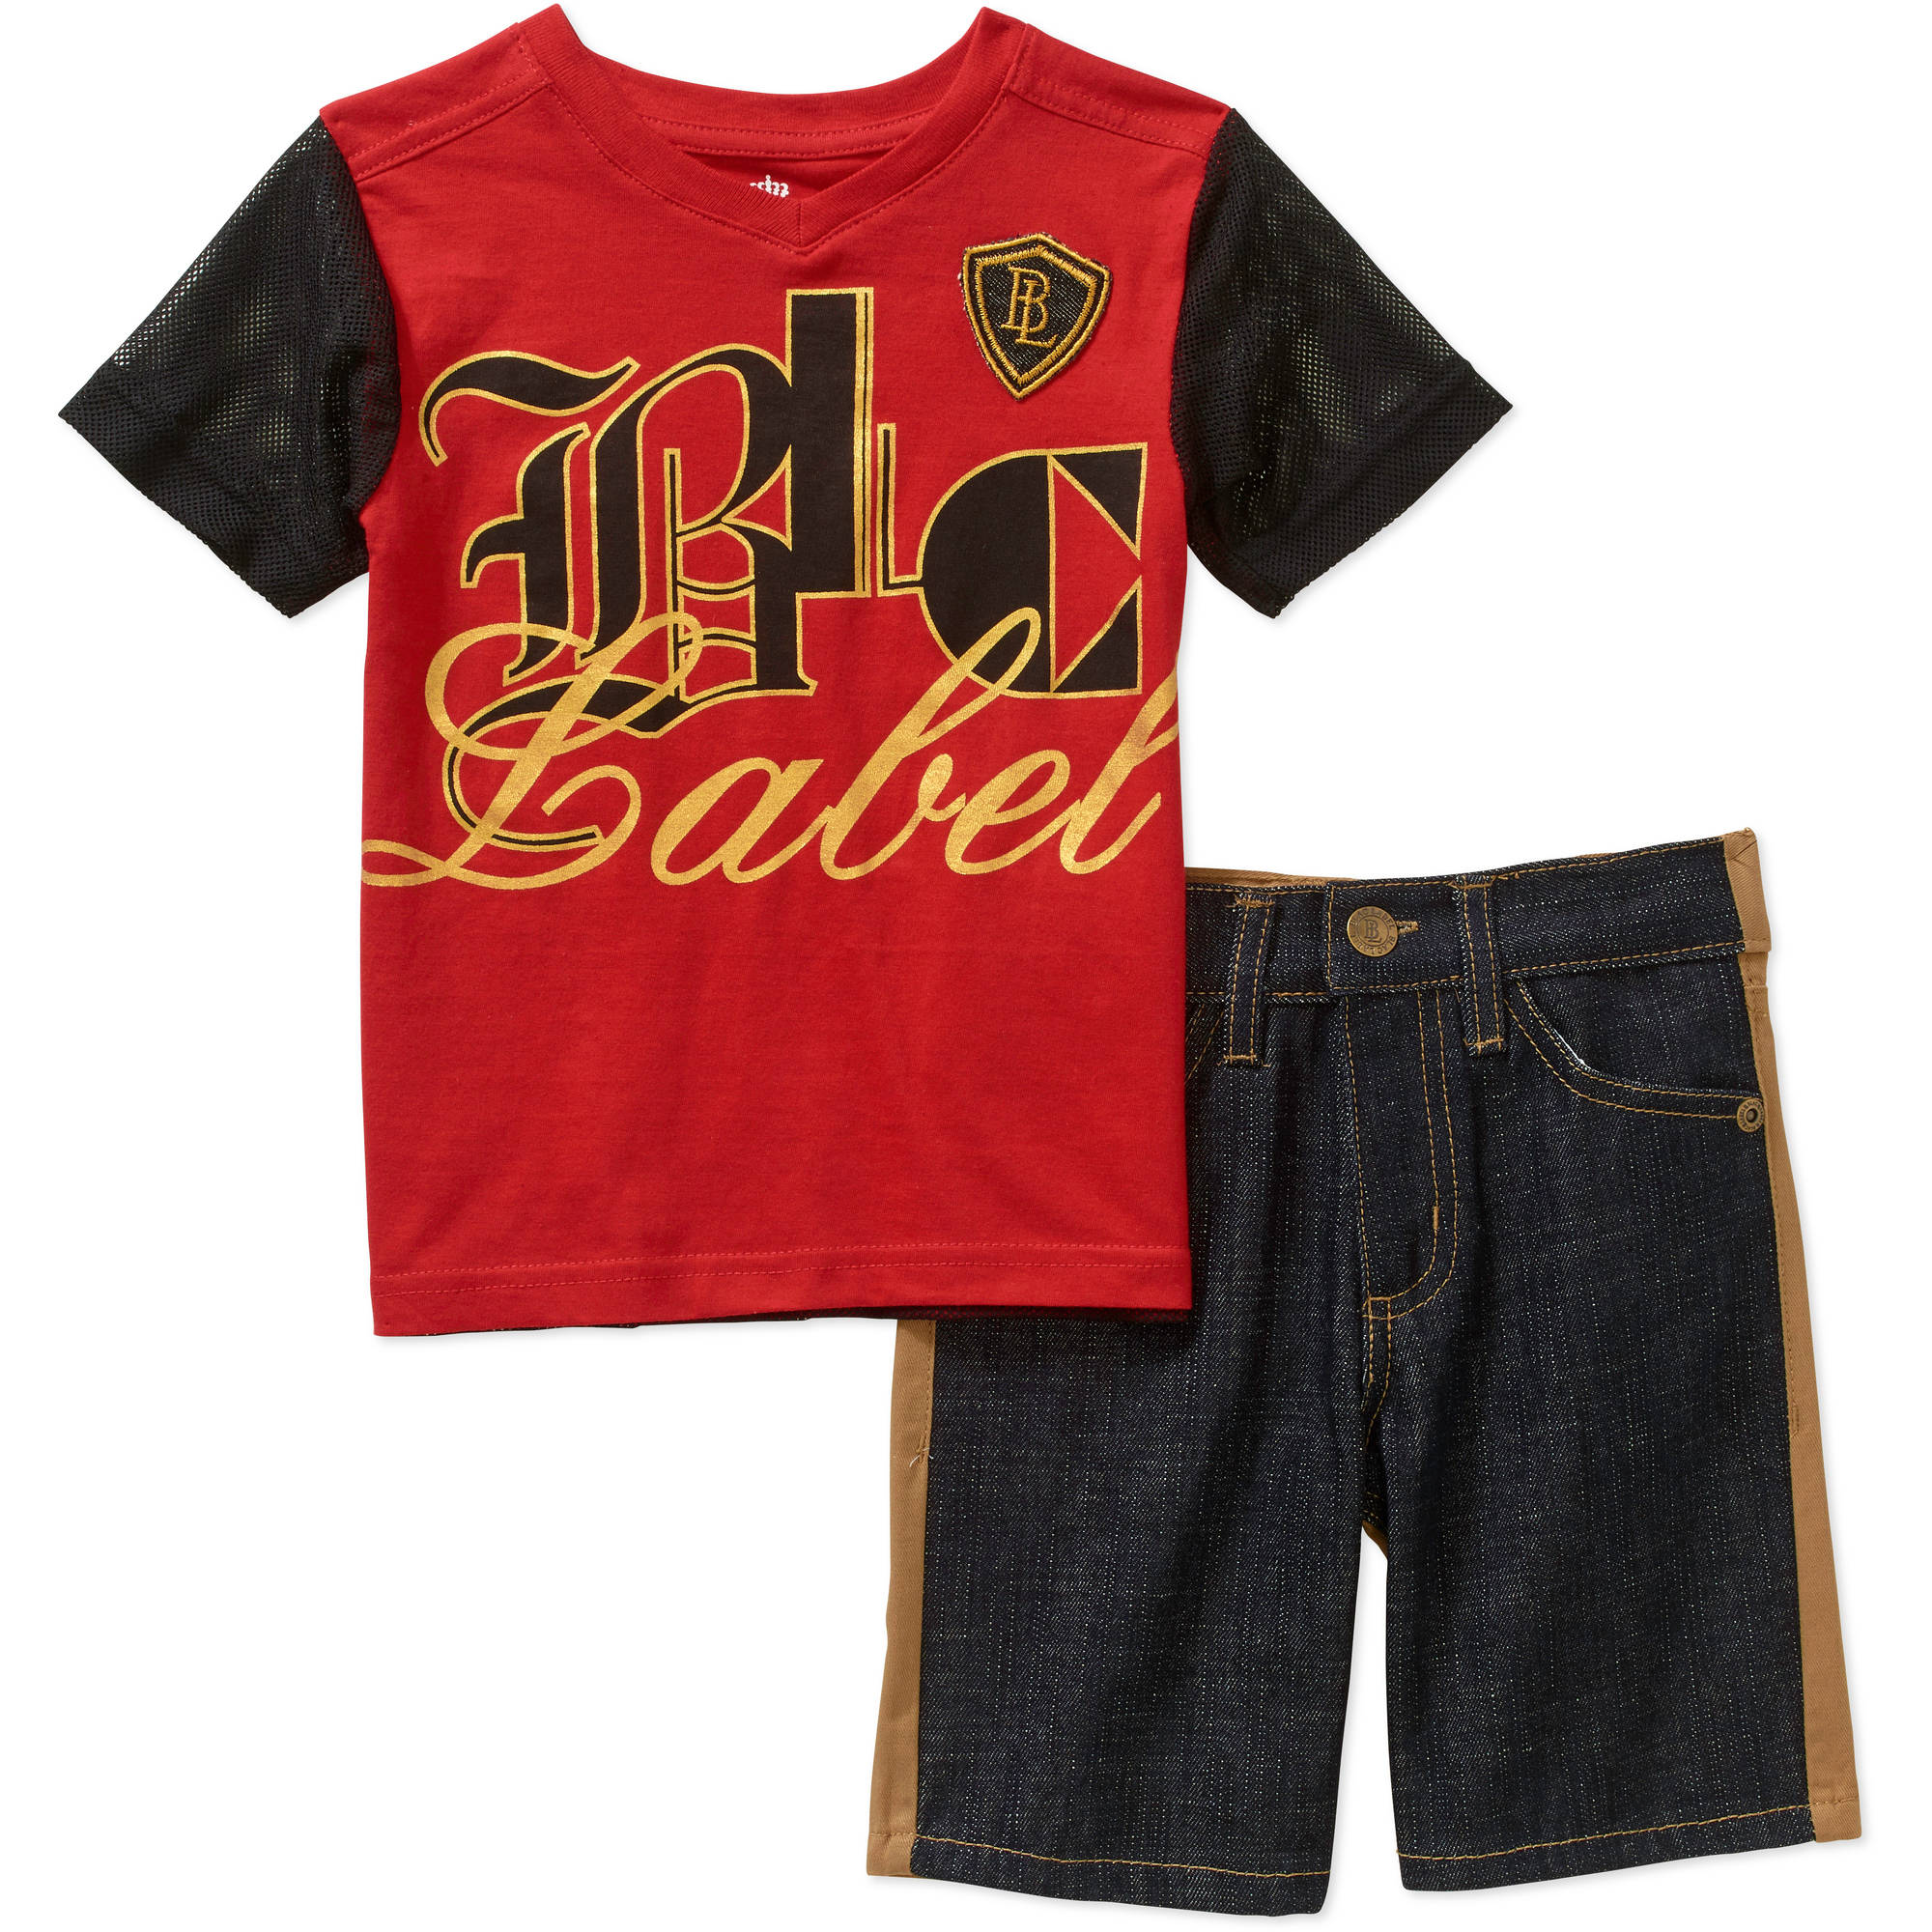 Blac Label Toddler Boys' 2-Piece Knit Tee & Plaid Shorts Set